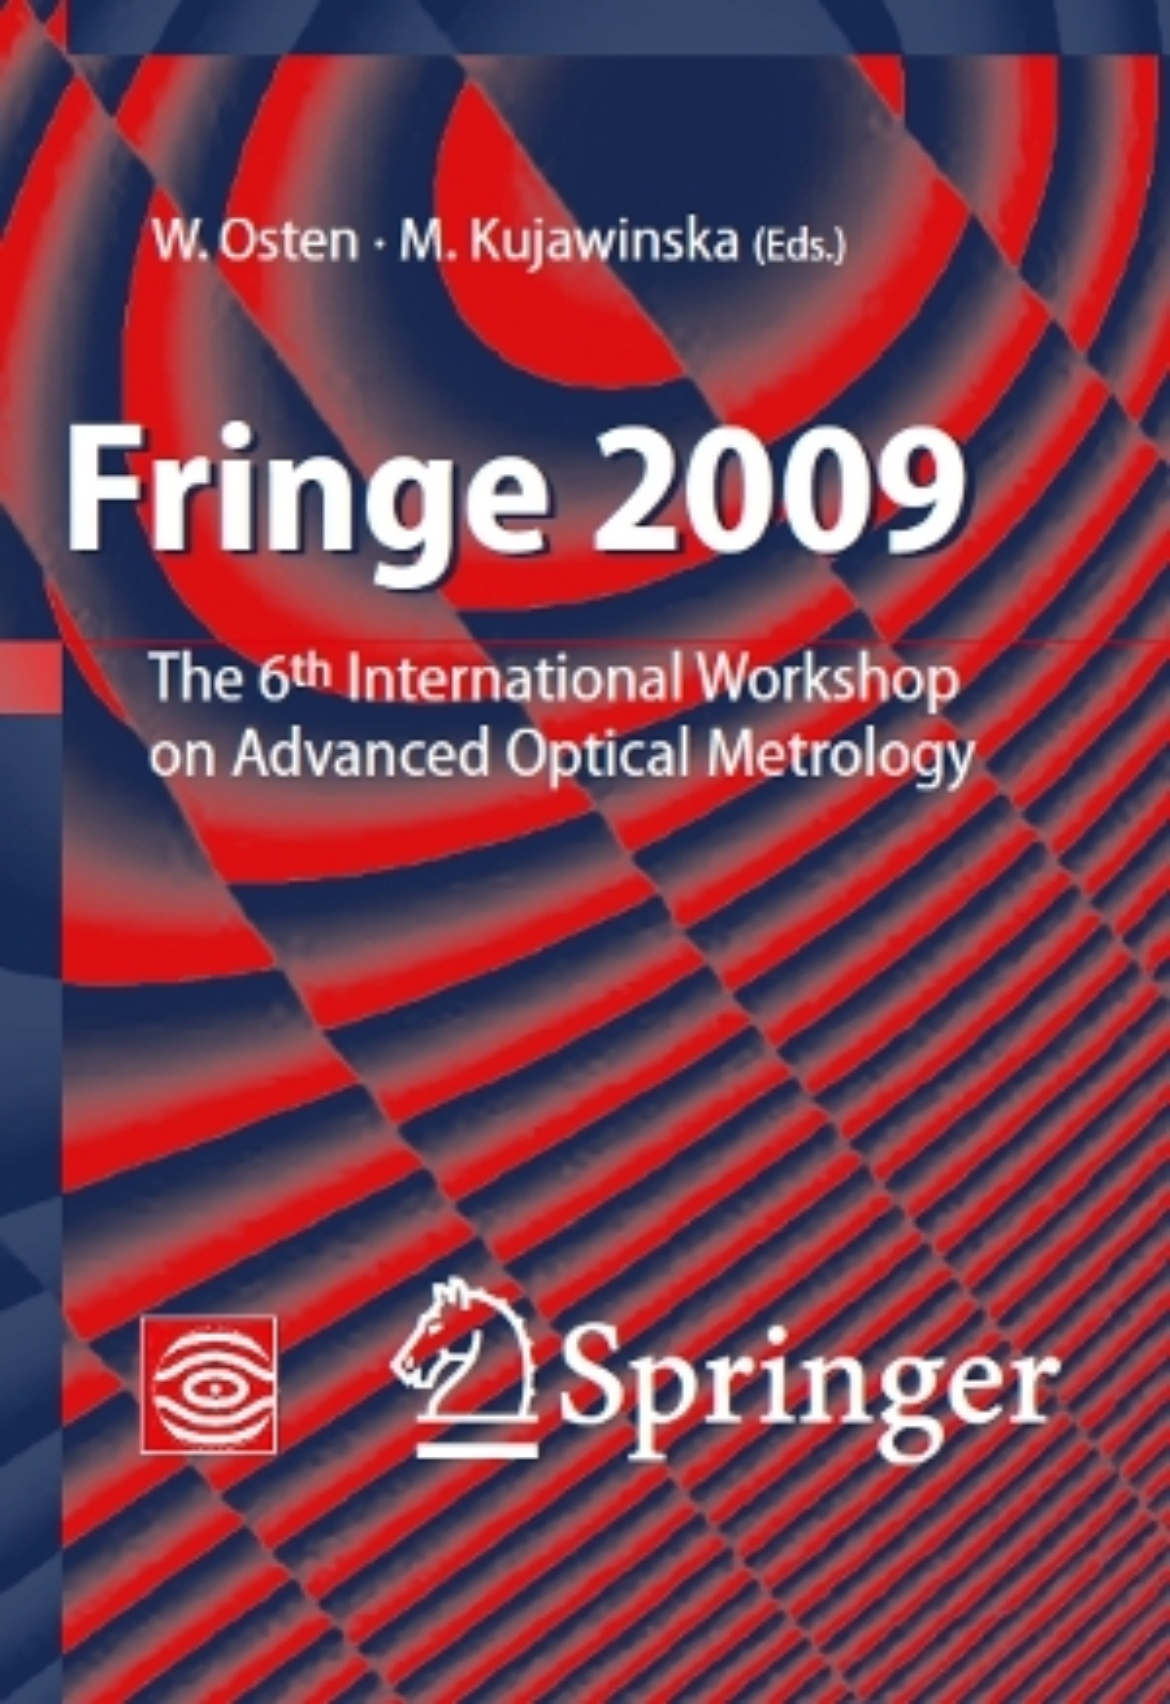 Fringe 2009: 6th International Workshop on Advanced Optical Metrology